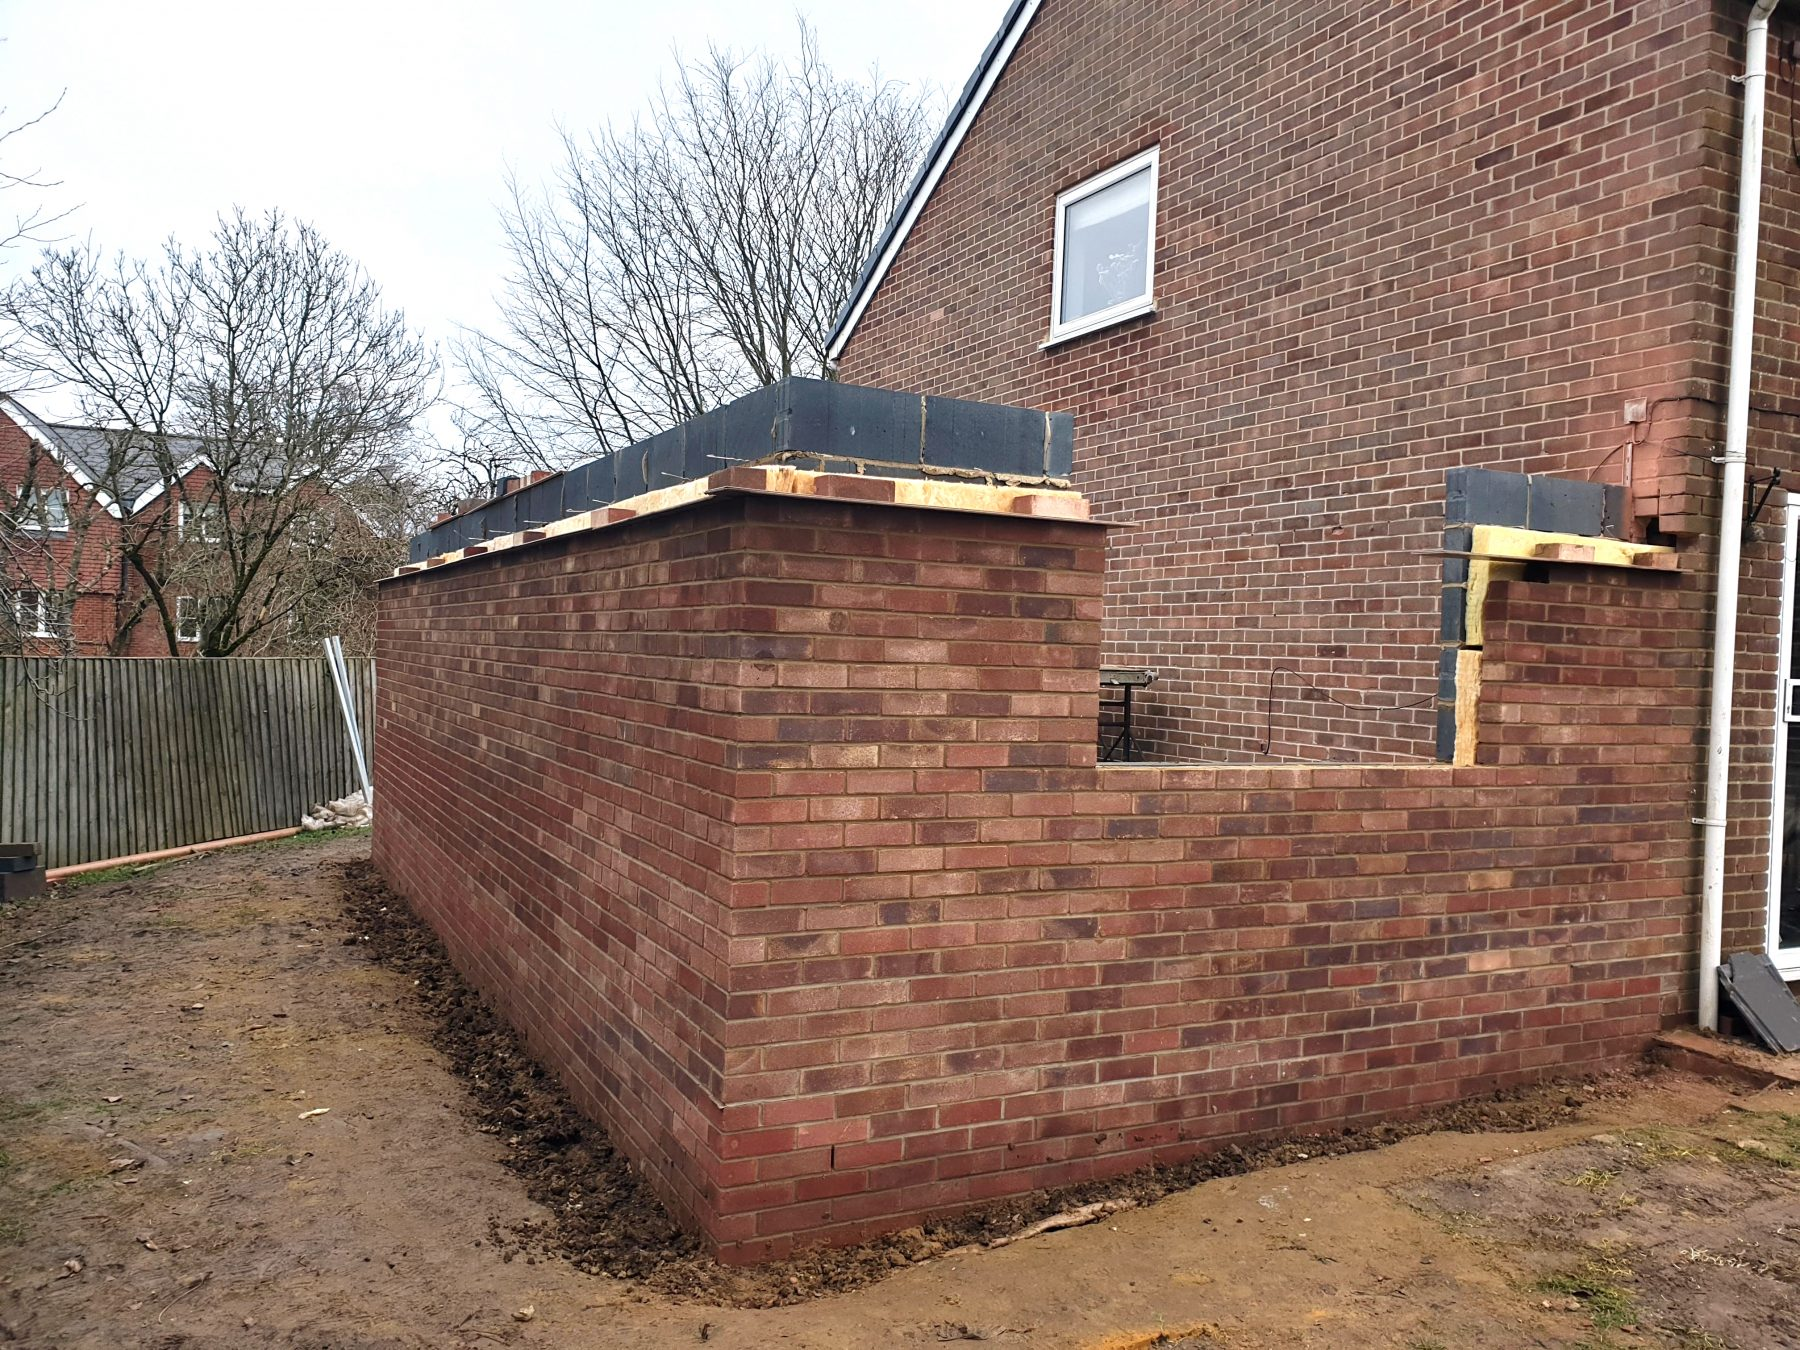 Brickwork for extension in Marlborough, Wiltshire